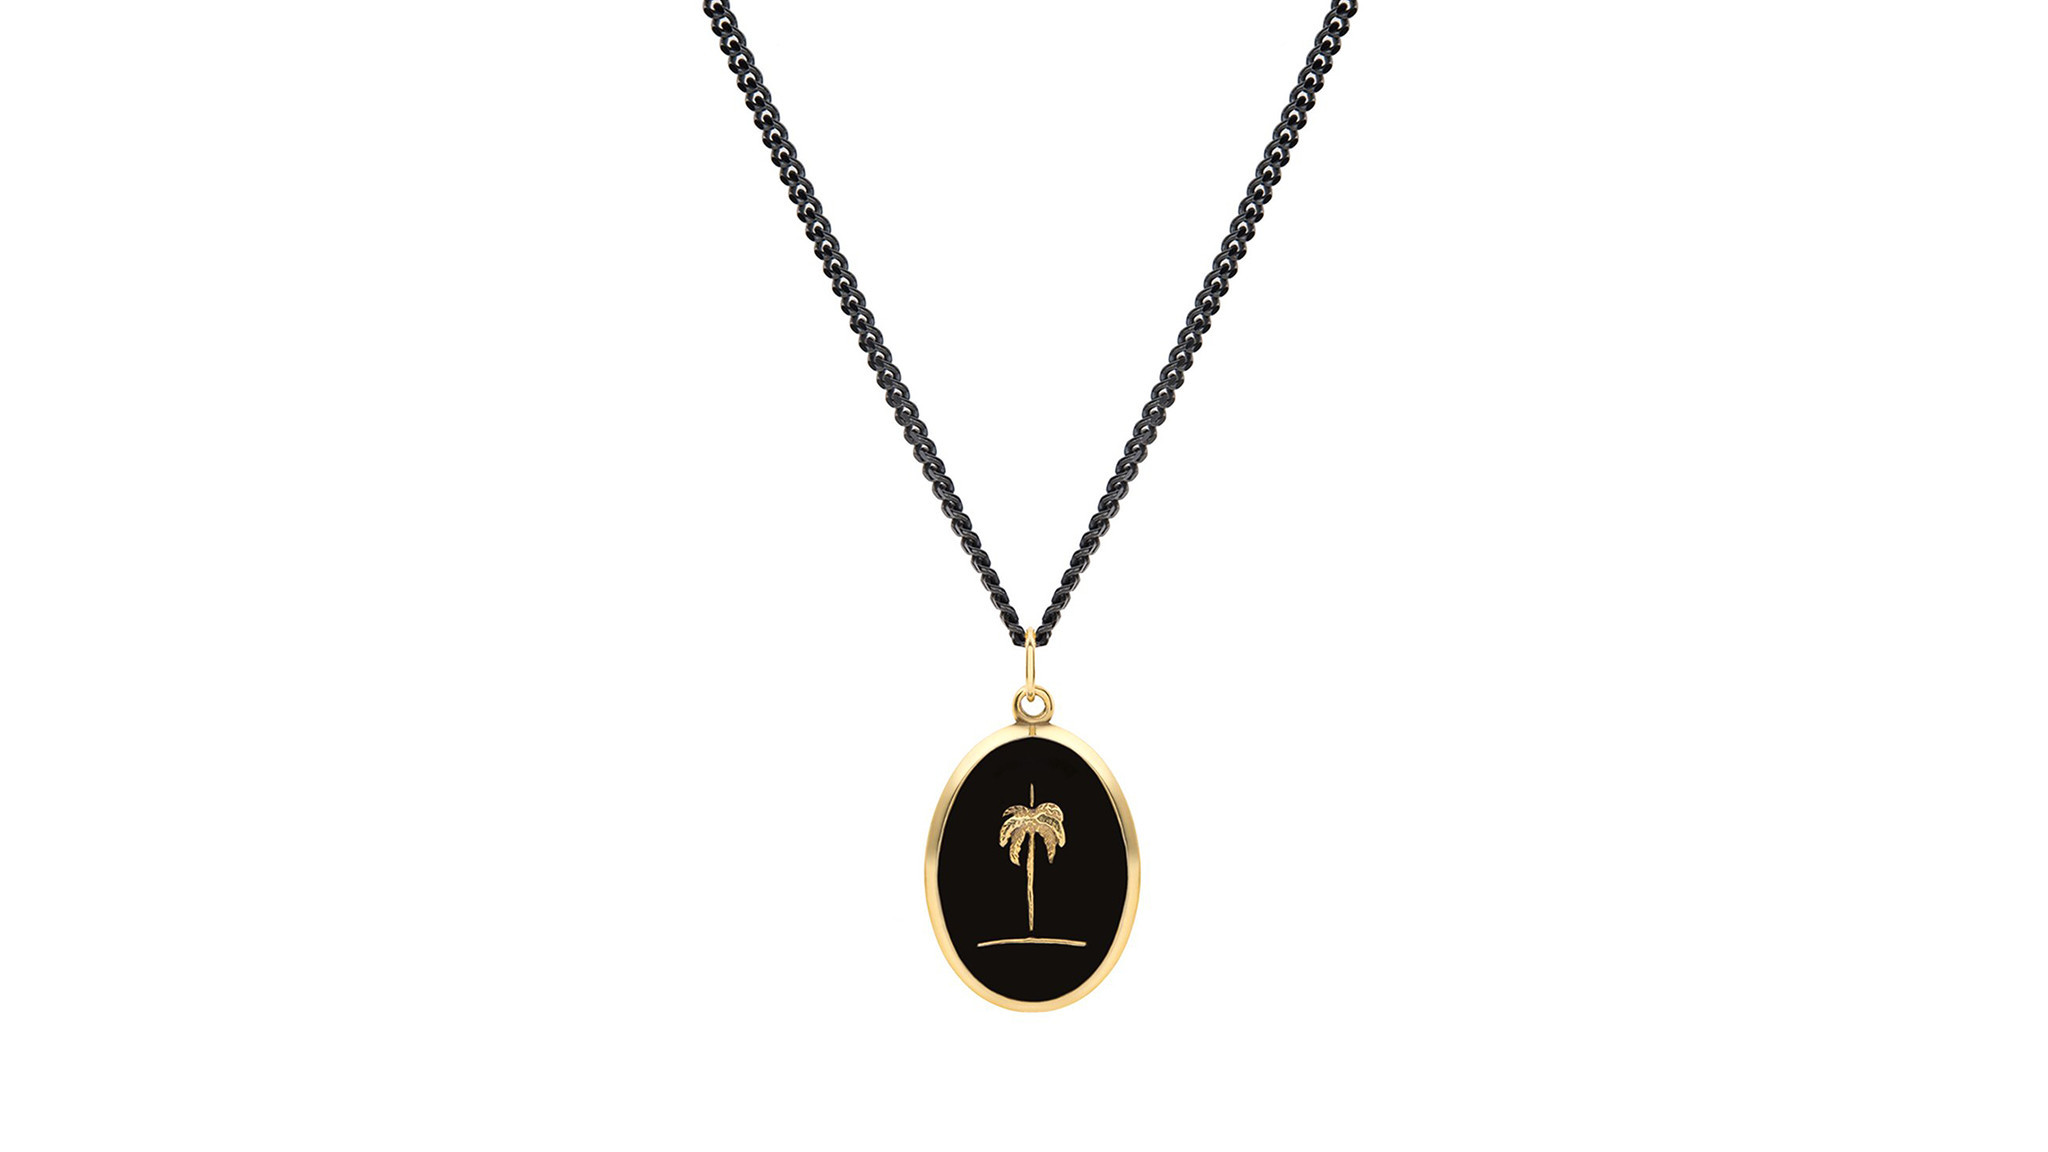 Miansai 14-karat yellow gold plated sterling silver and black enamel palm tree necklace on 24-inch c